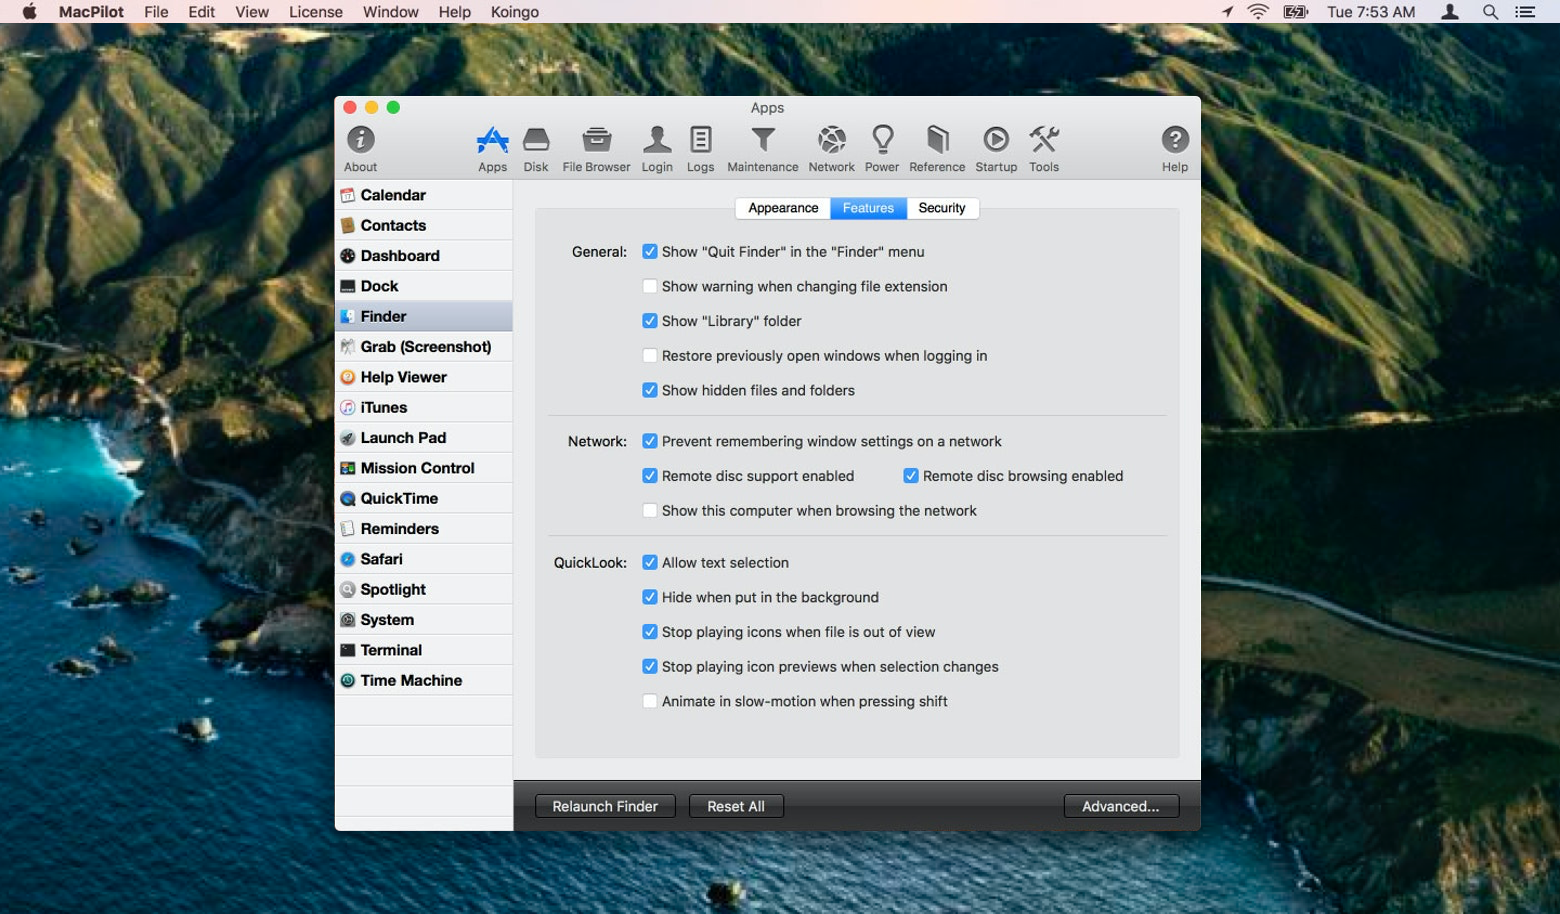 Terminal for Mac with MacPilot